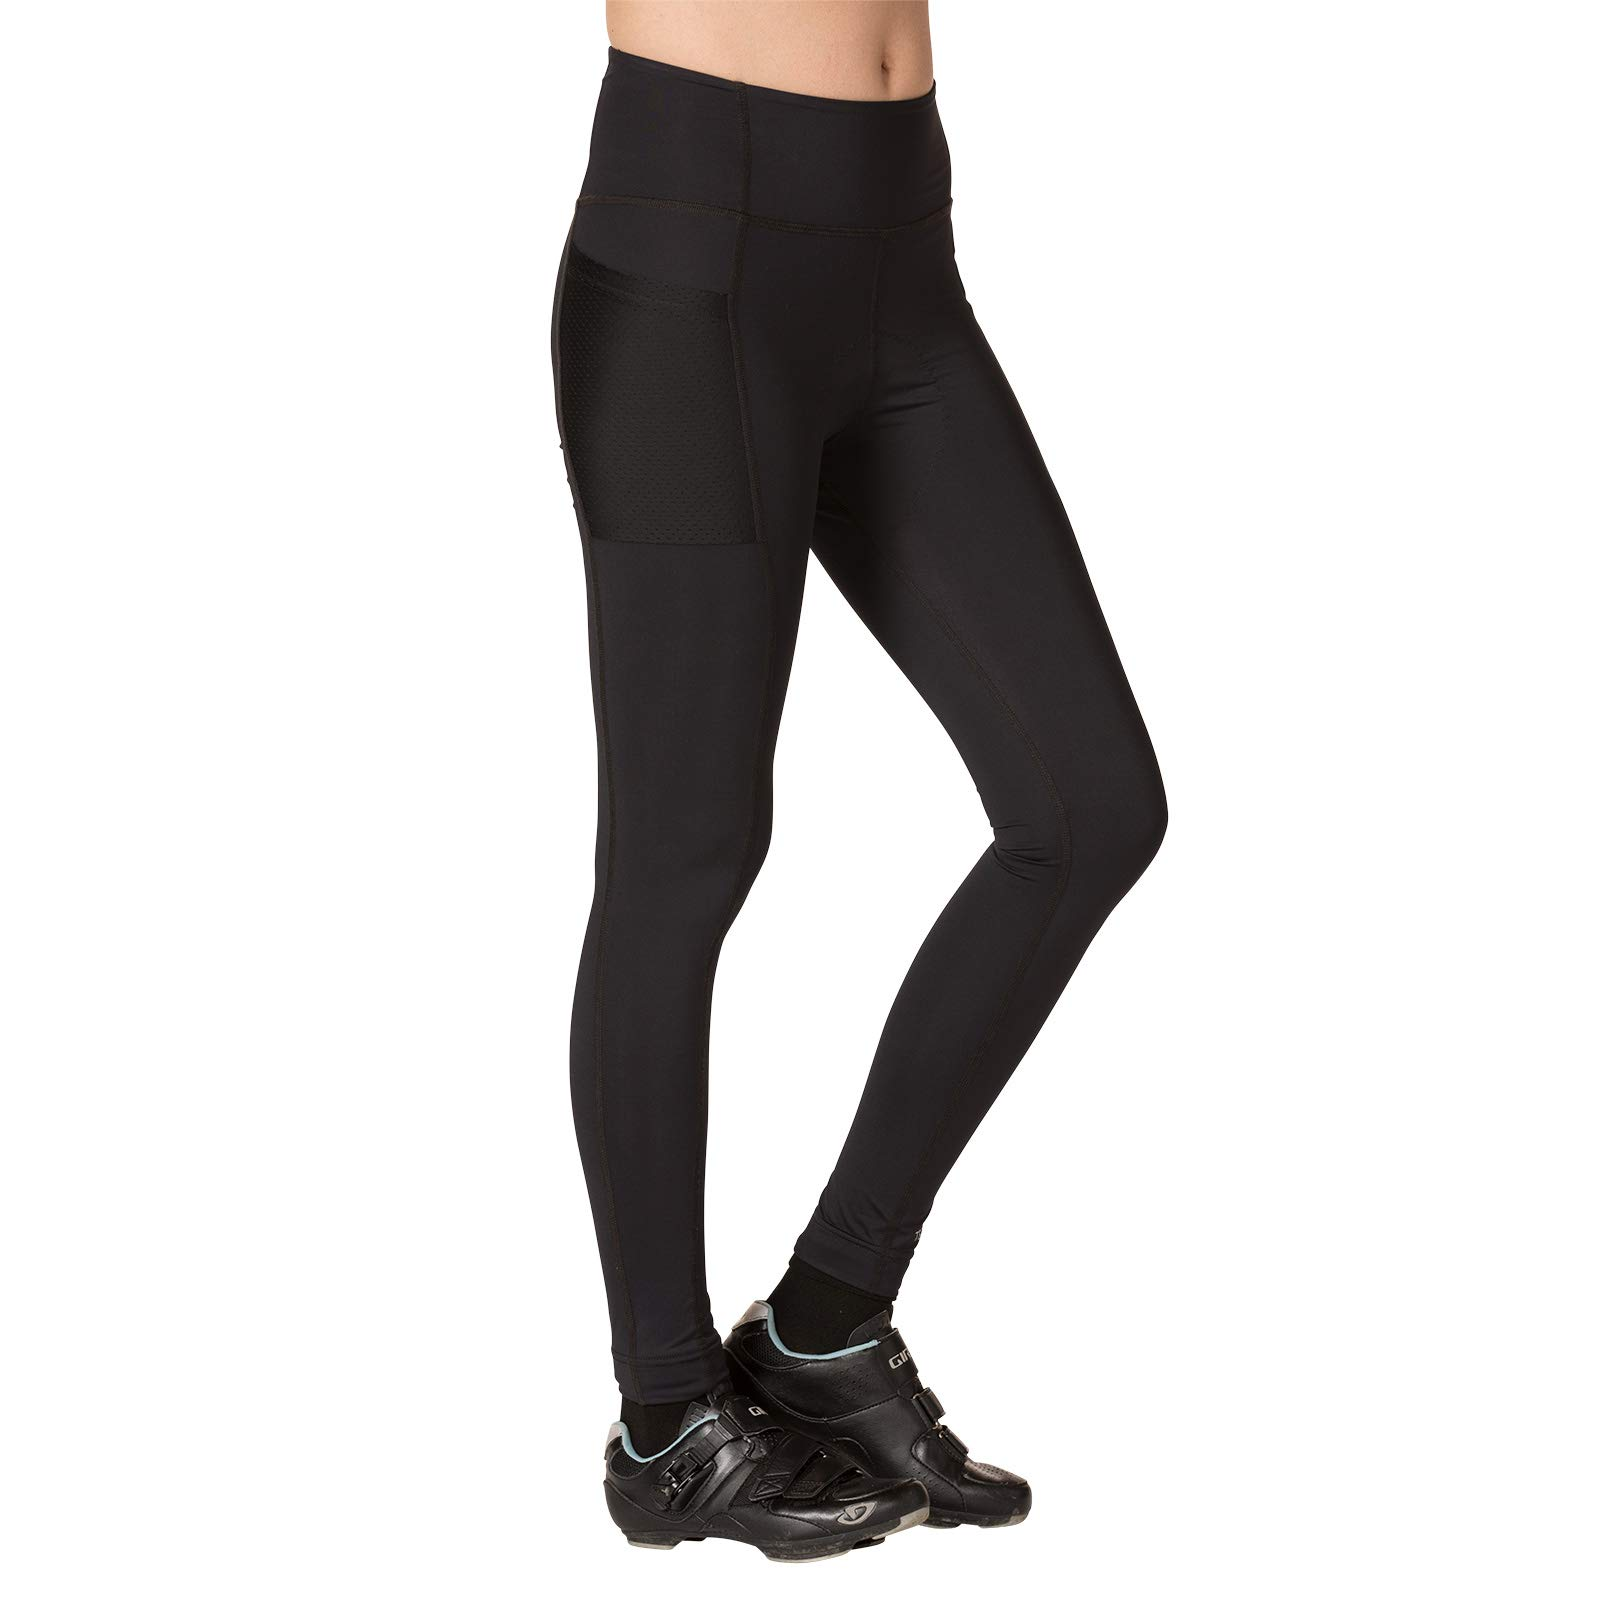 Terry Women's Holster Prima Cycling Tight - A Higher Compression, Full Length Option for Cooler Temperatures – Black – Large by Terry (Image #2)